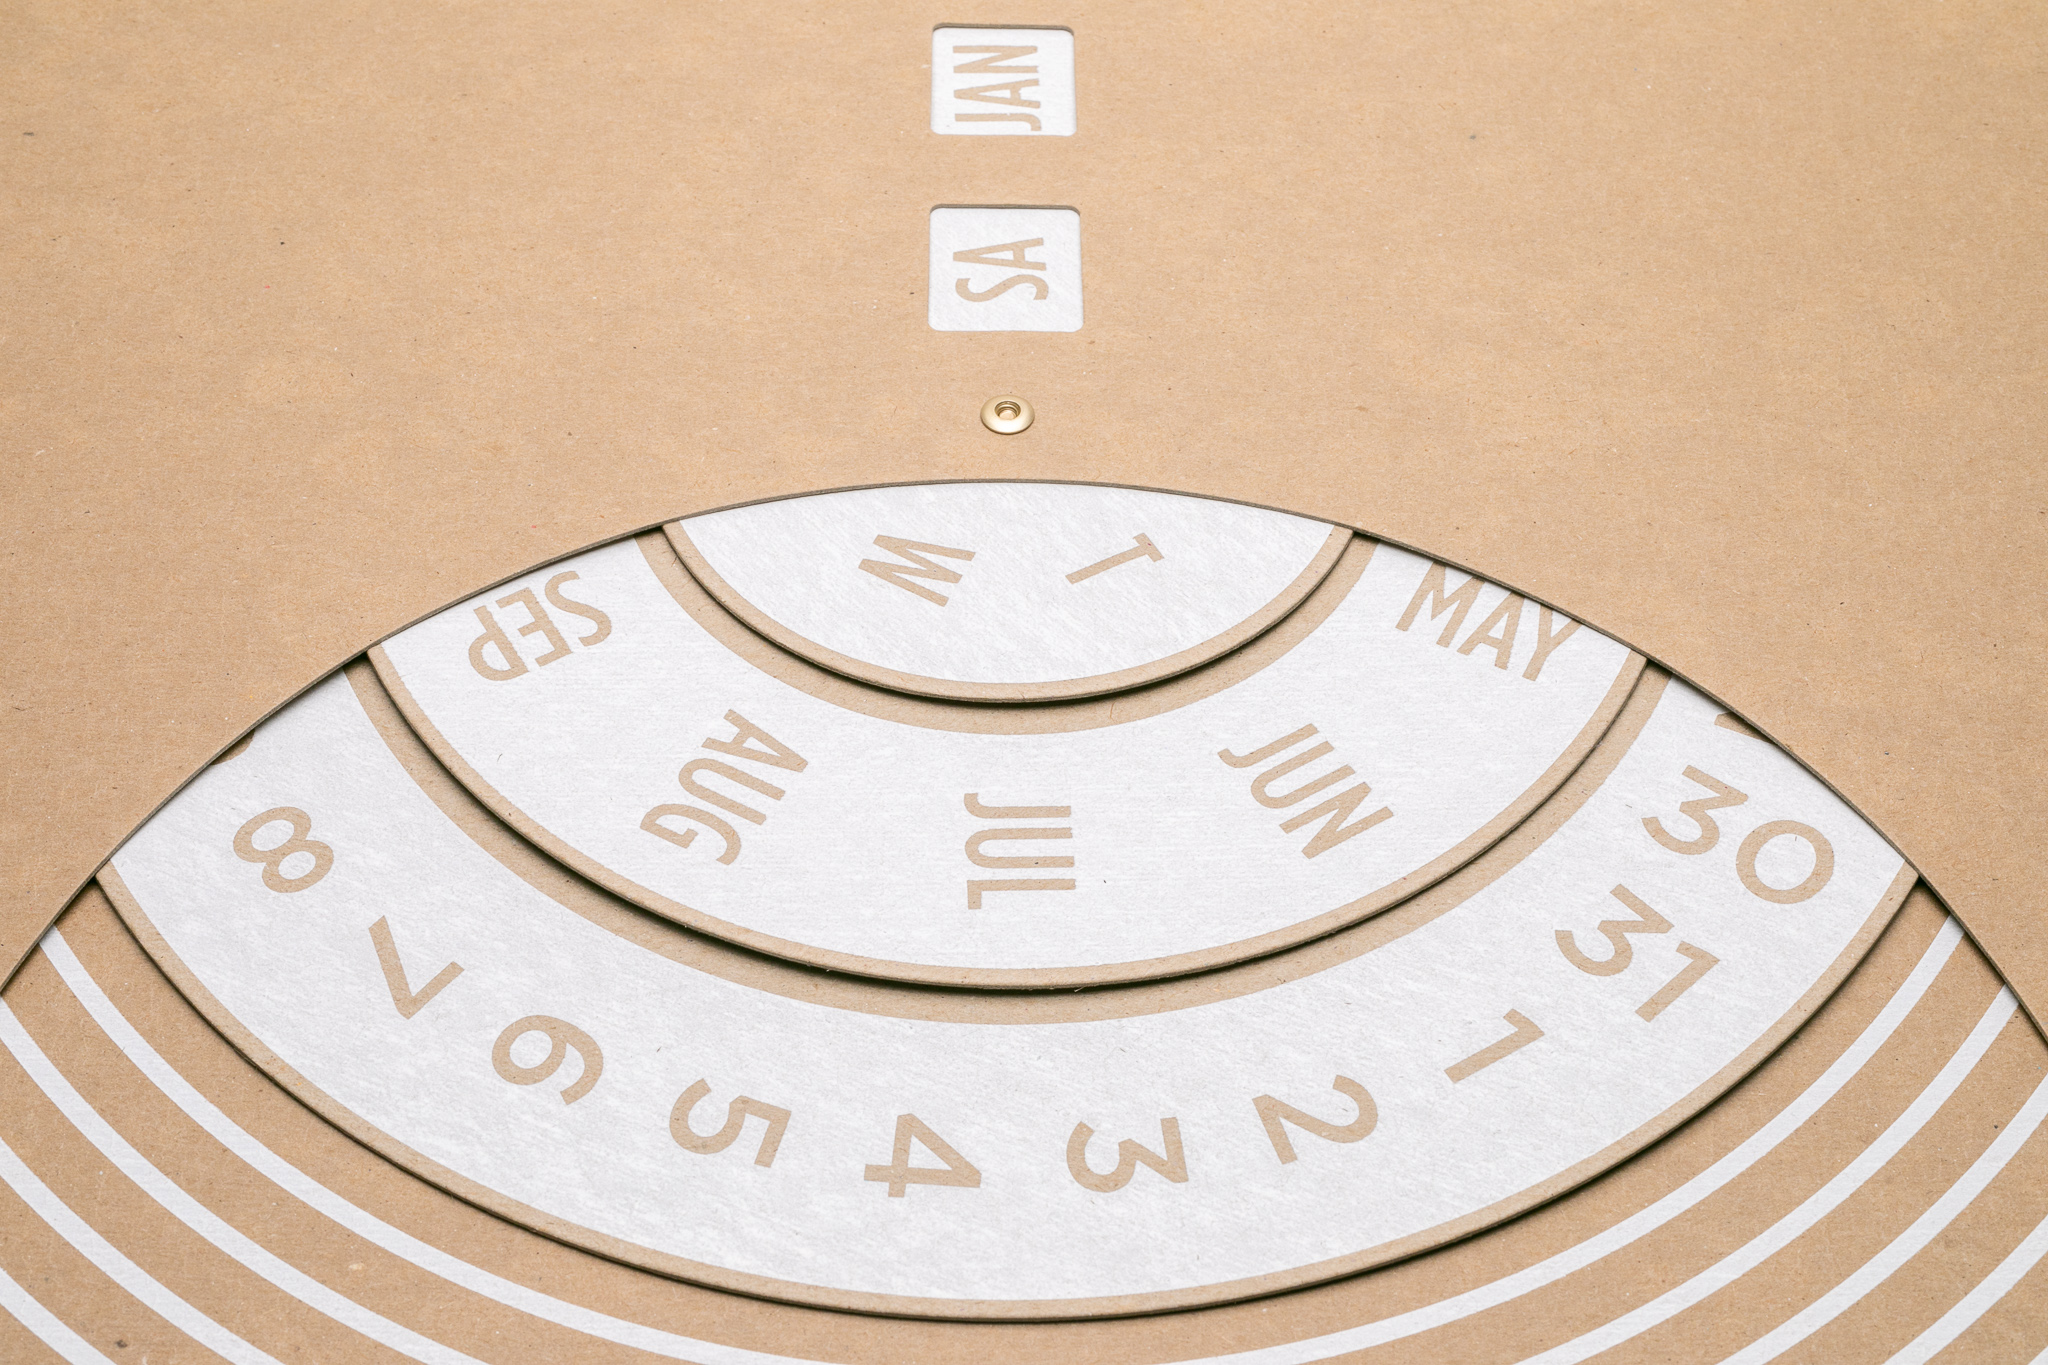 THE CHIPBOARD - –SCREEN PRINTED BY HAND–We use a kraft brown chipboard that's manufactured right down the road from our Detroit studio. The 50 point weight is designed to resist rippling, fading, and warping from the sun over time.